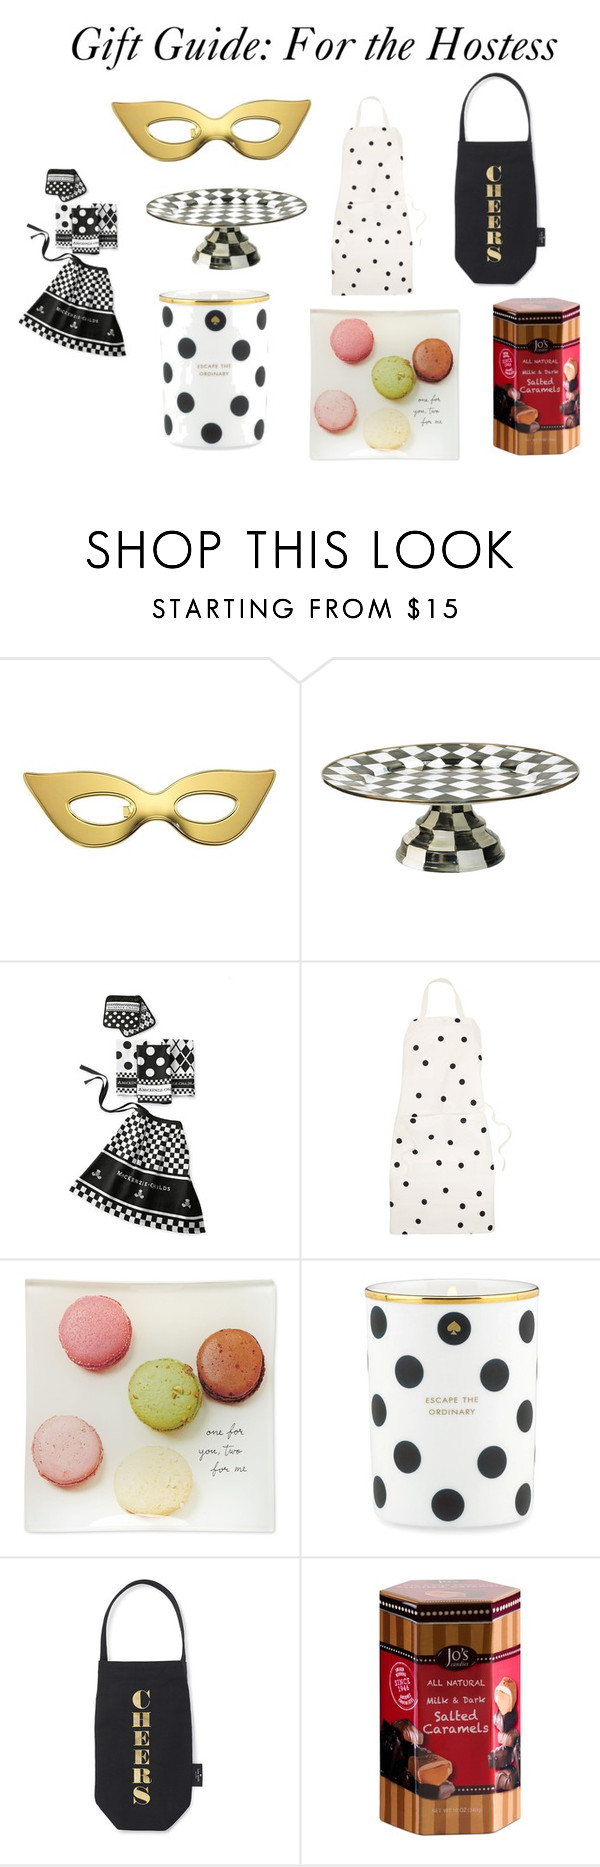 """Gift Guide: For the Hostess"" by macaronsandcoffee ❤ liked on Polyvore featuring interior, interiors, interior design, home, home decor, interior decorating, Kate Spade, MacKenzie-Childs and Jo's Candies"